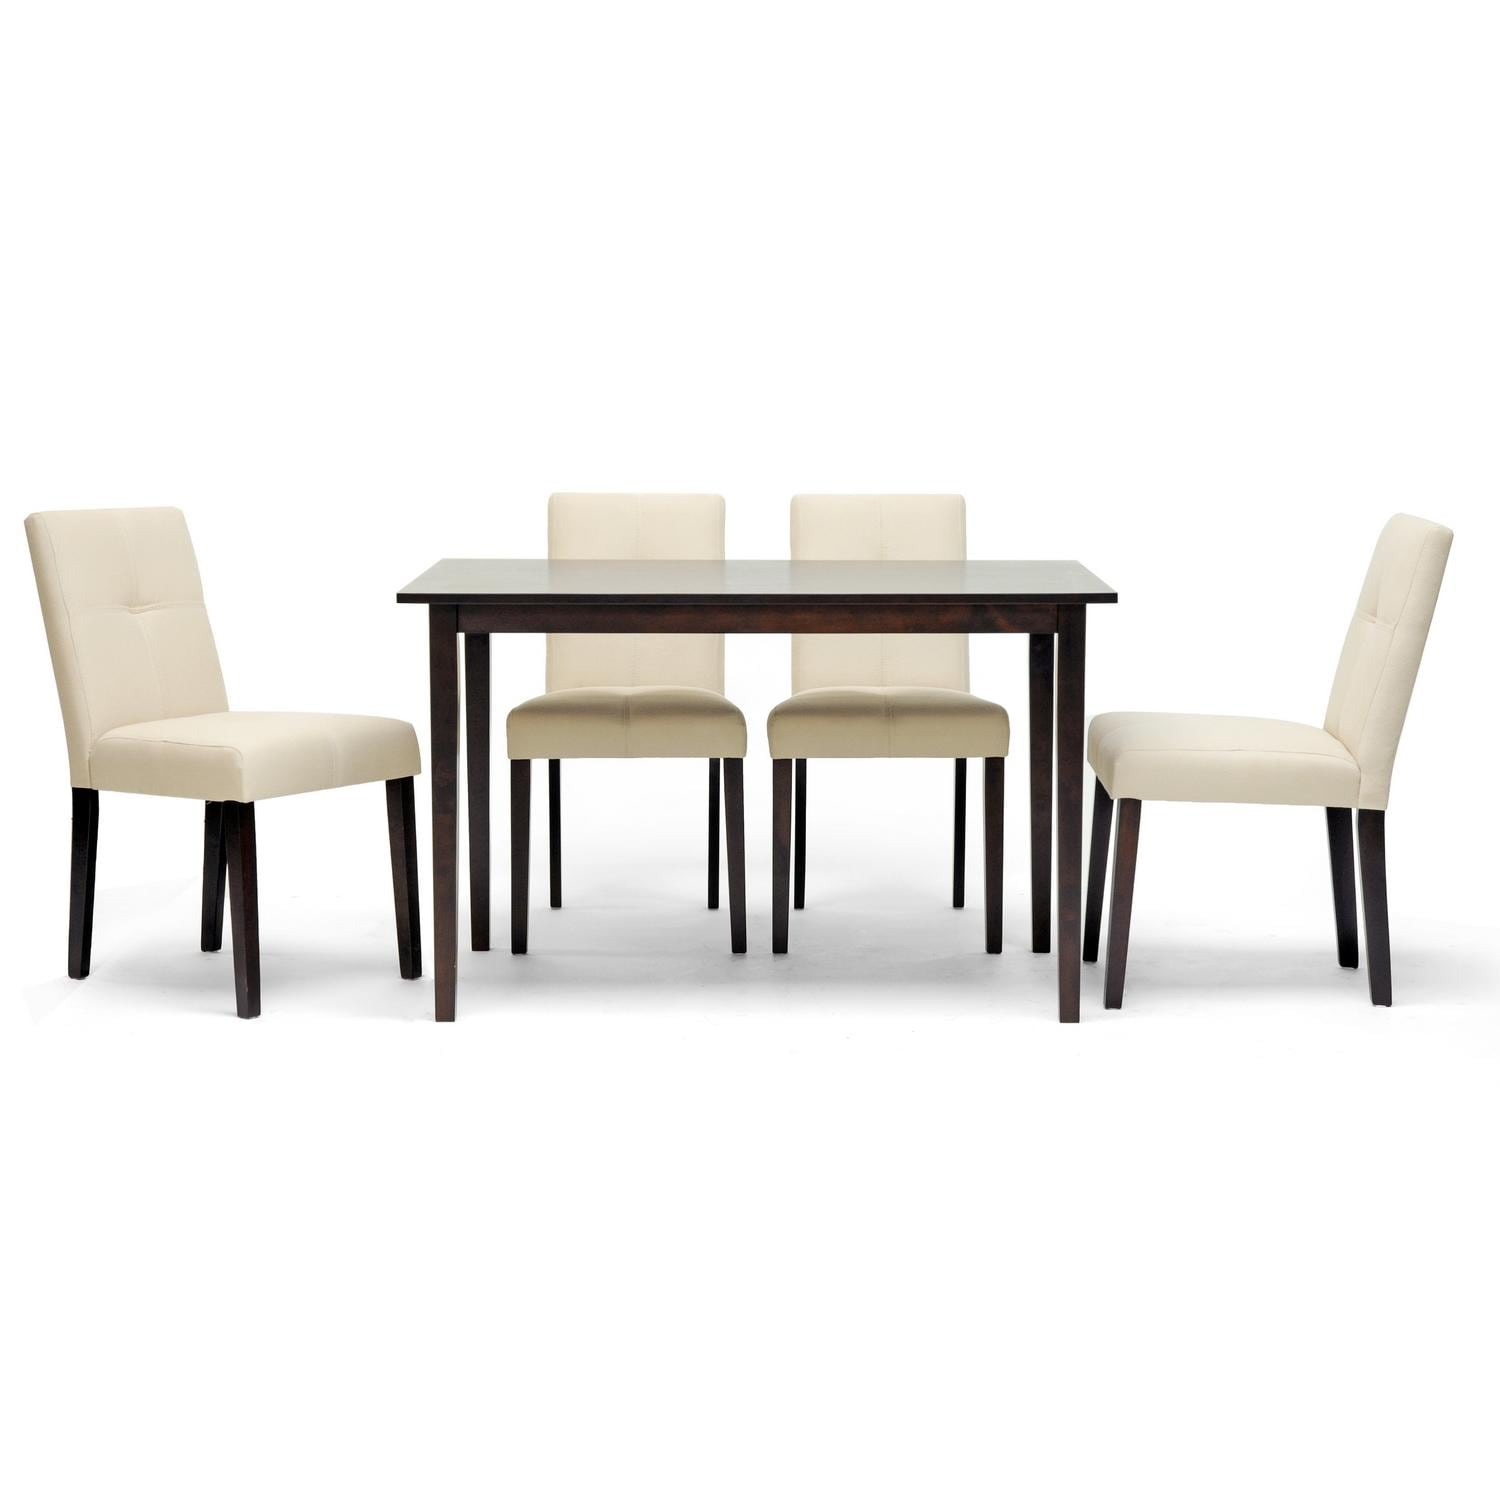 Baxton studio elsa brown wood 5 piece modern dining set for Designer dinette sets